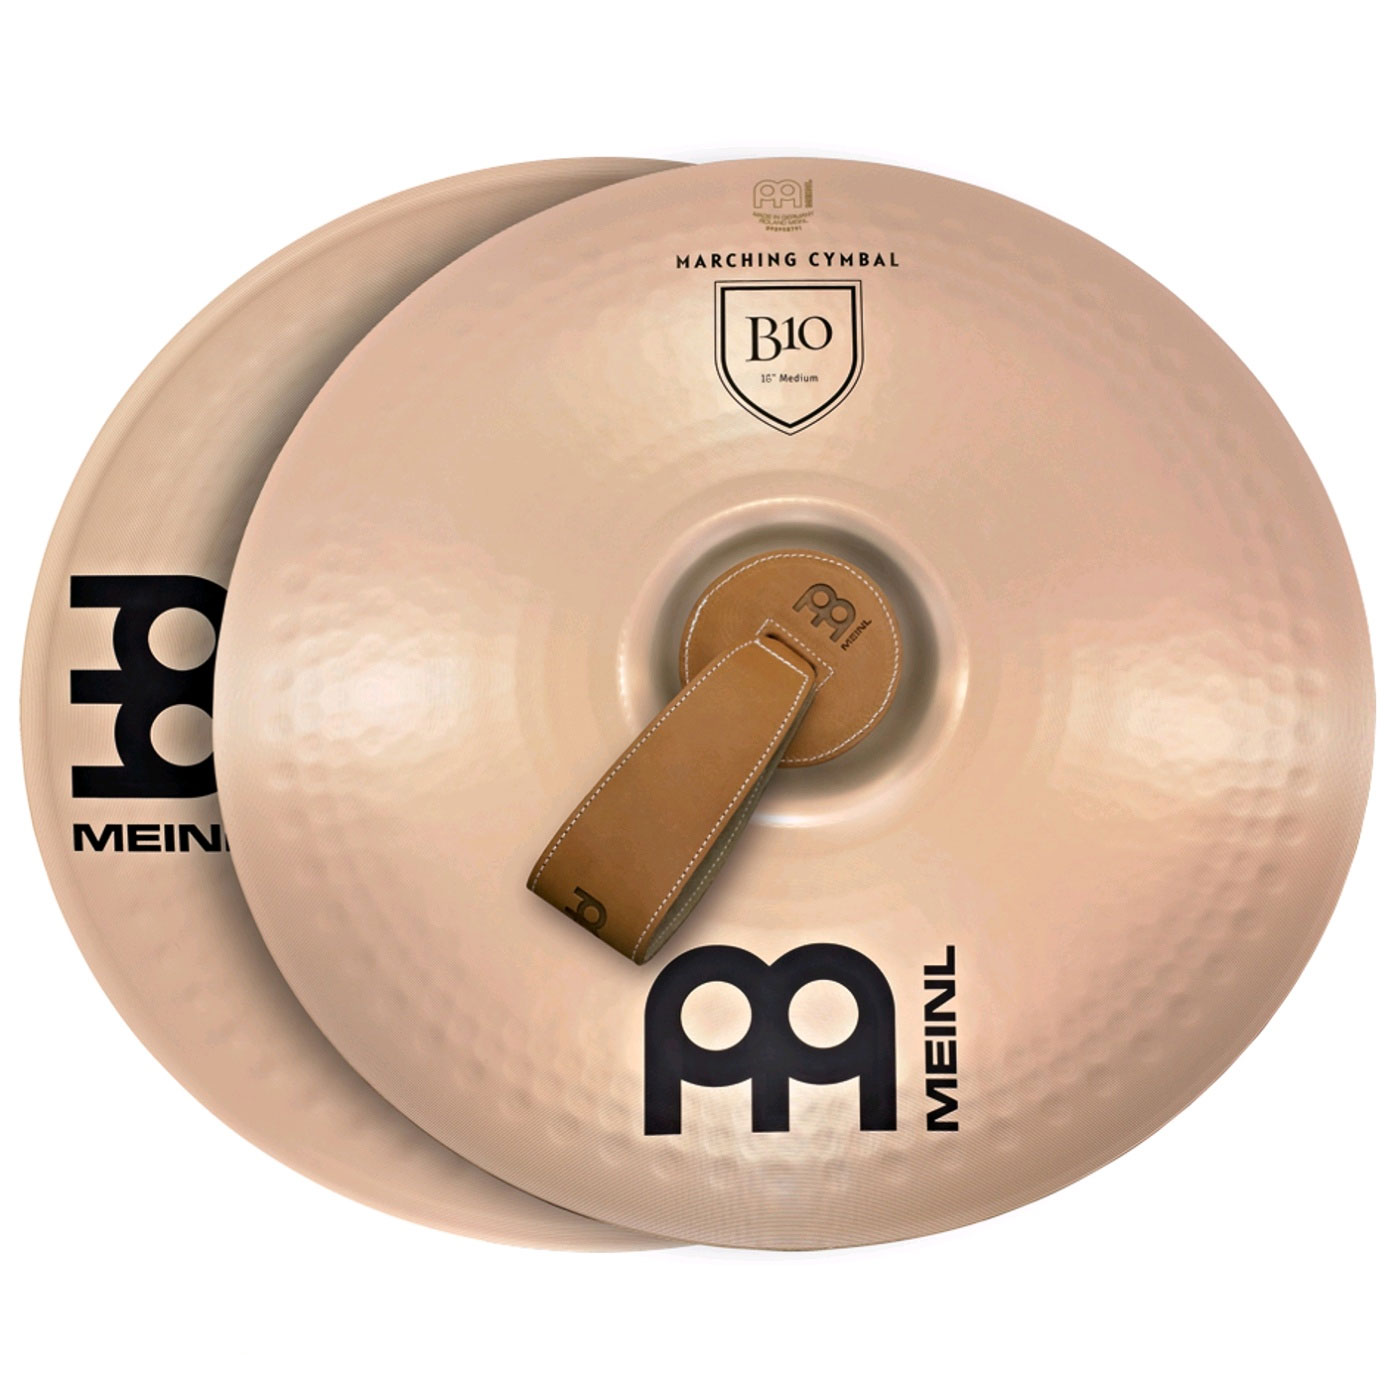 "Meinl 20"" Medium B10 Marching Cymbals Pair"